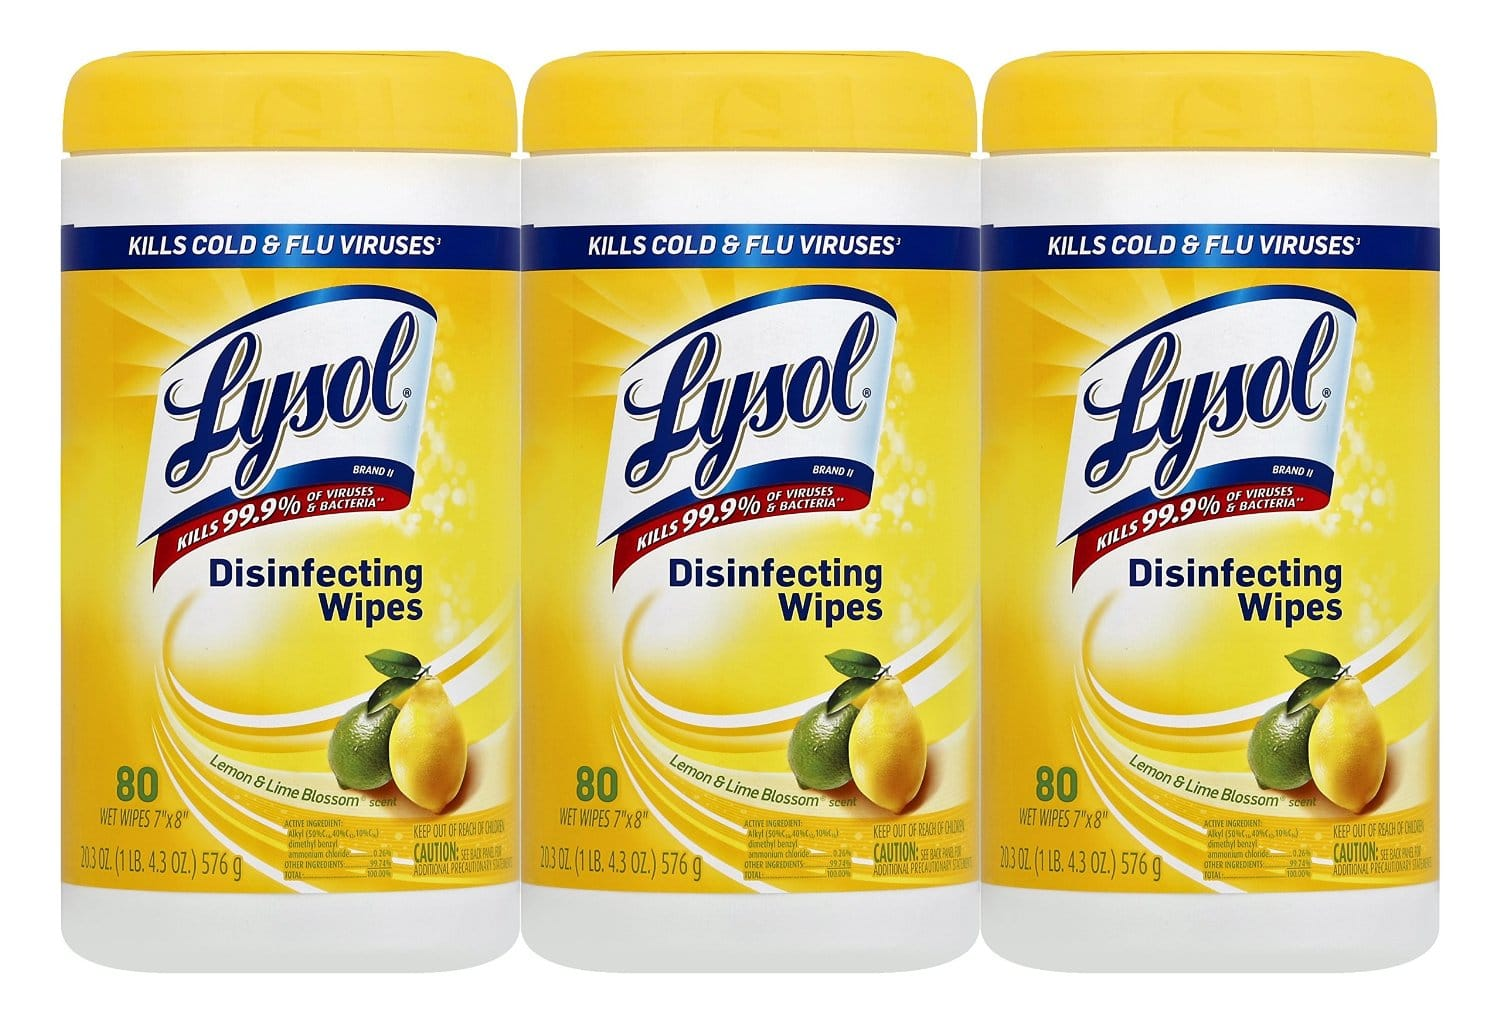 Prime Members: 240-Ct Lysol Disinfecting Wipes (Lemon & Lime Blossom)  $6.10 + Free Shipping